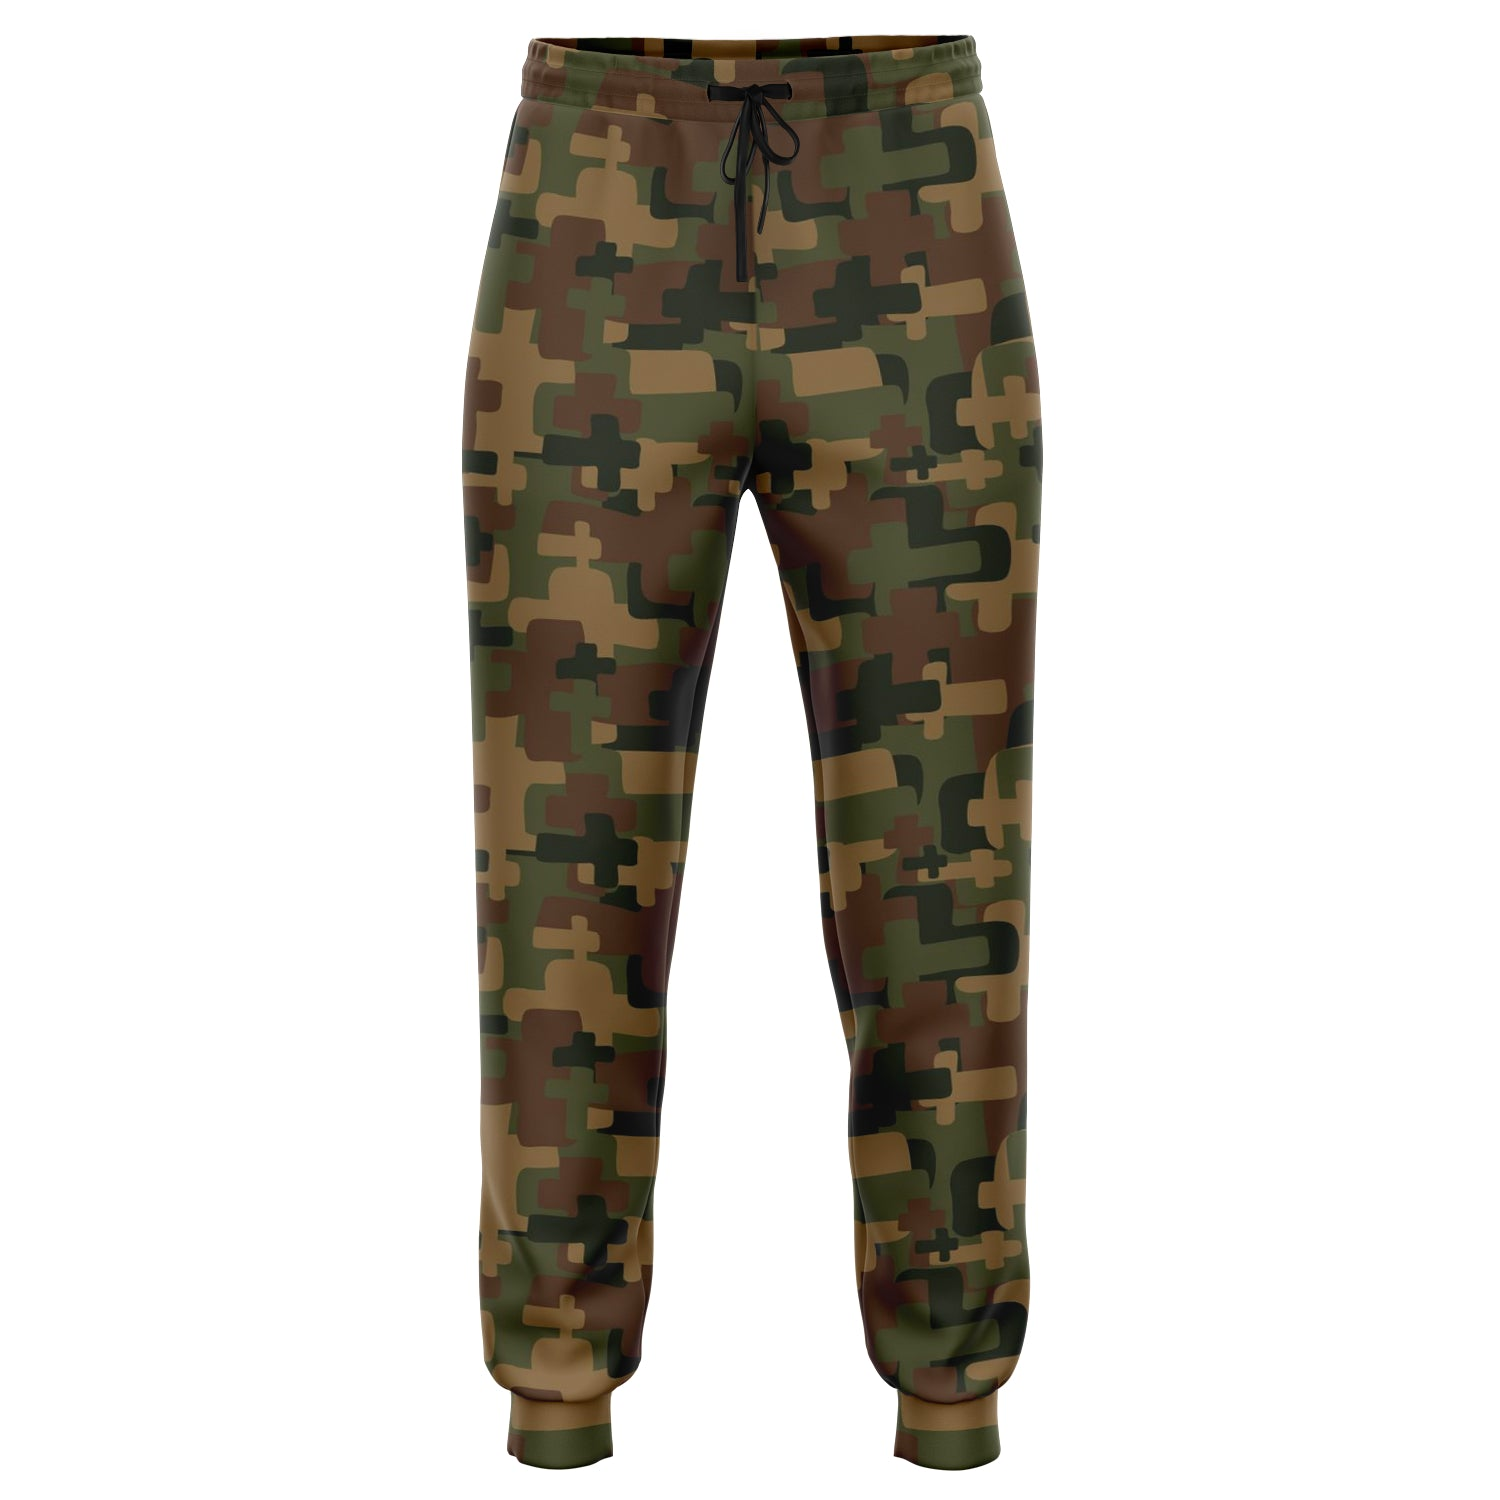 Boaz and Ruth Unisex Cross Camo Joggers